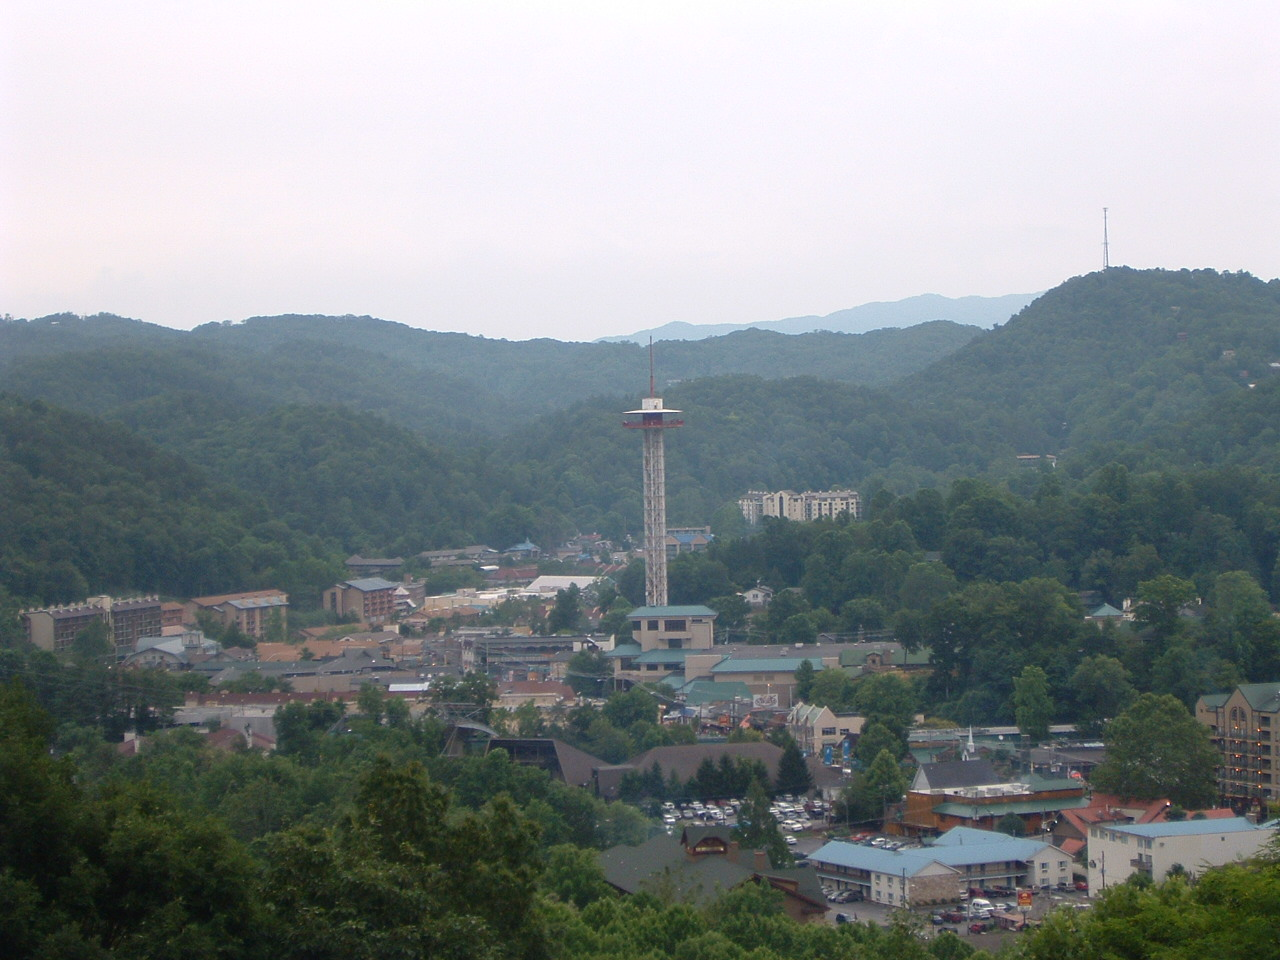 Gatlinburg bordering the Great Smoky Mountains National Park